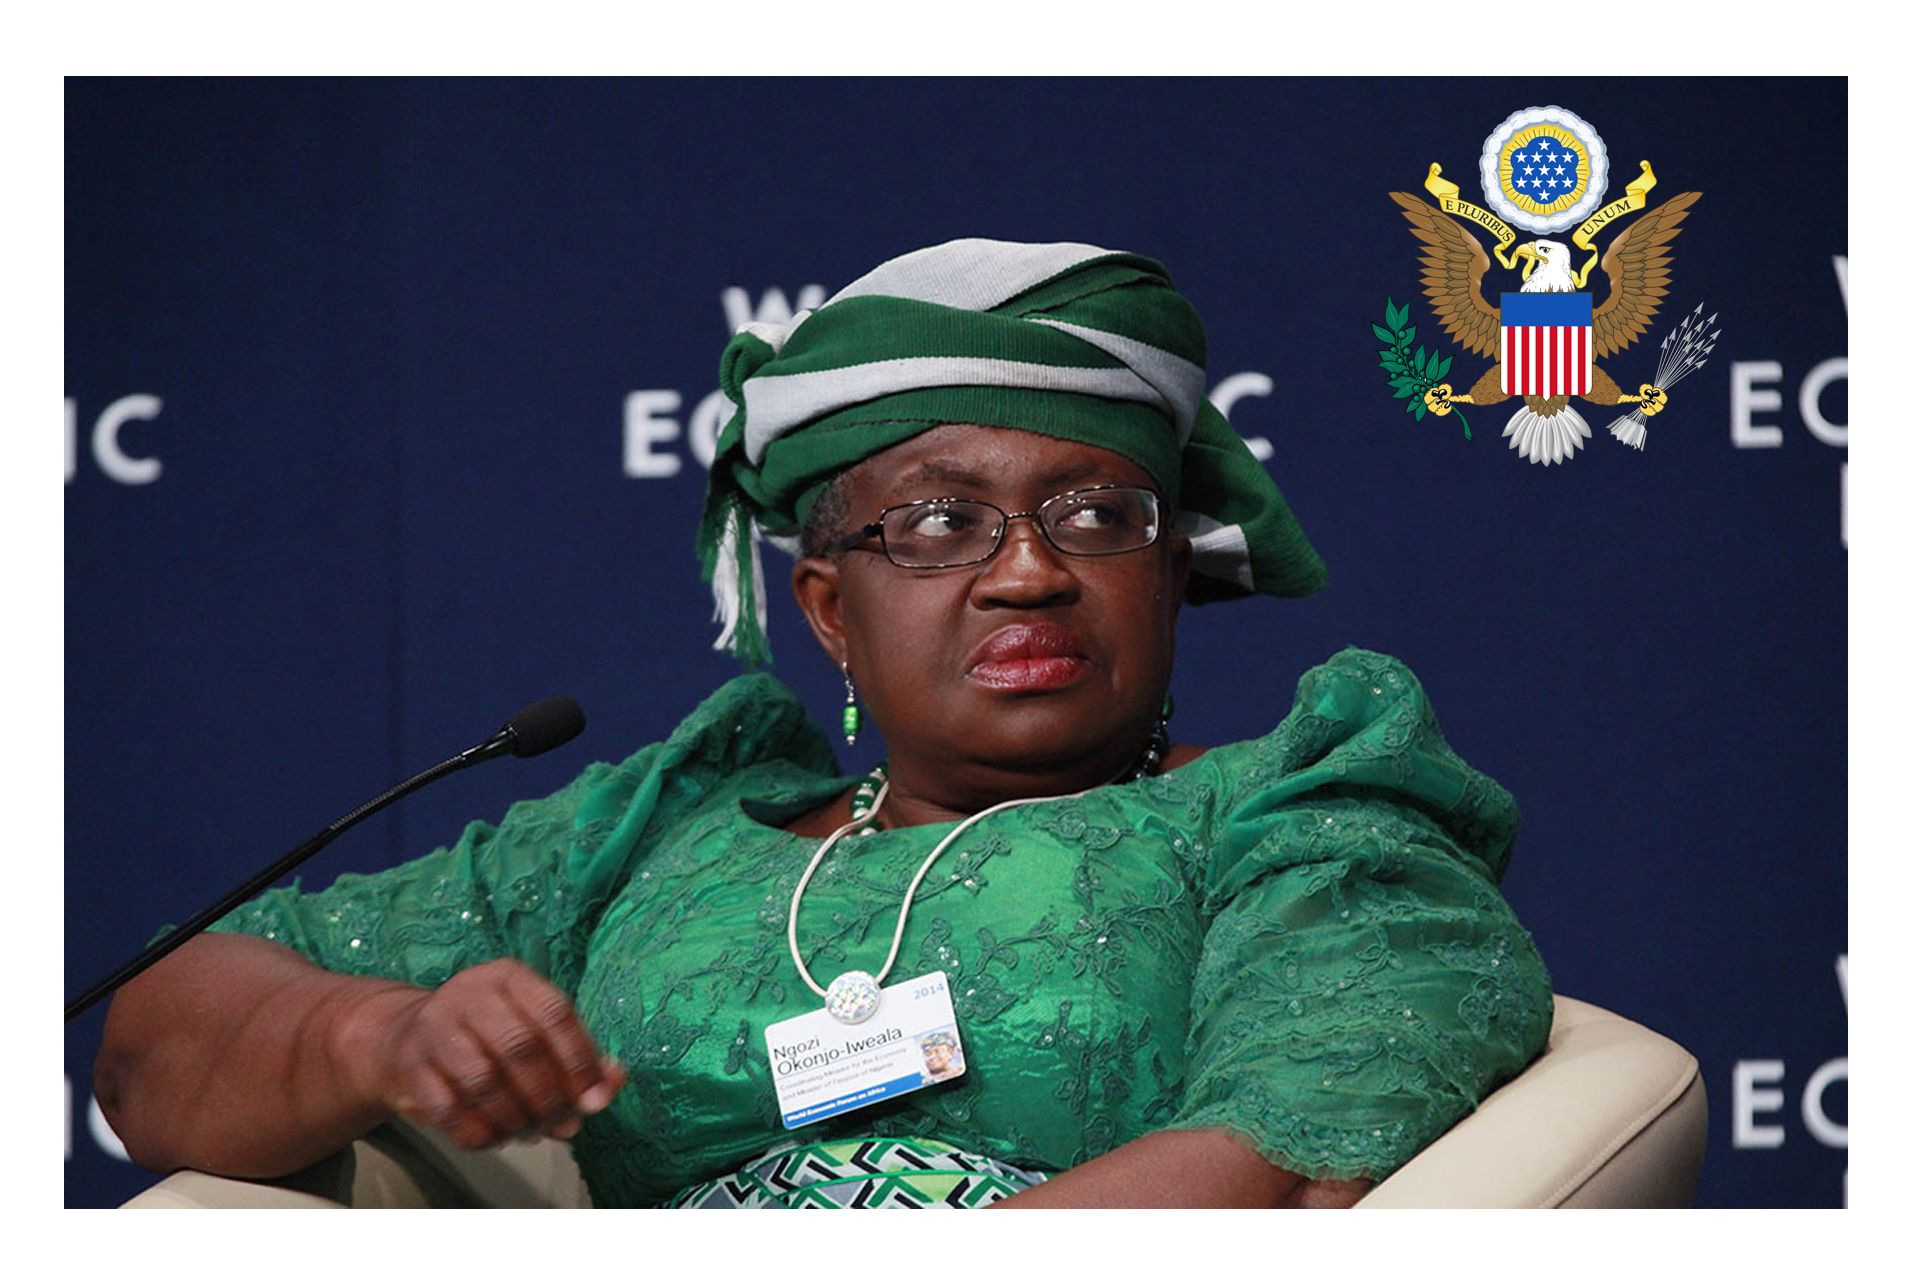 USA President Joe Biden Backs Nigeria's ex-finance Minister Ngozi Okonjo-Iweala For WTO Director